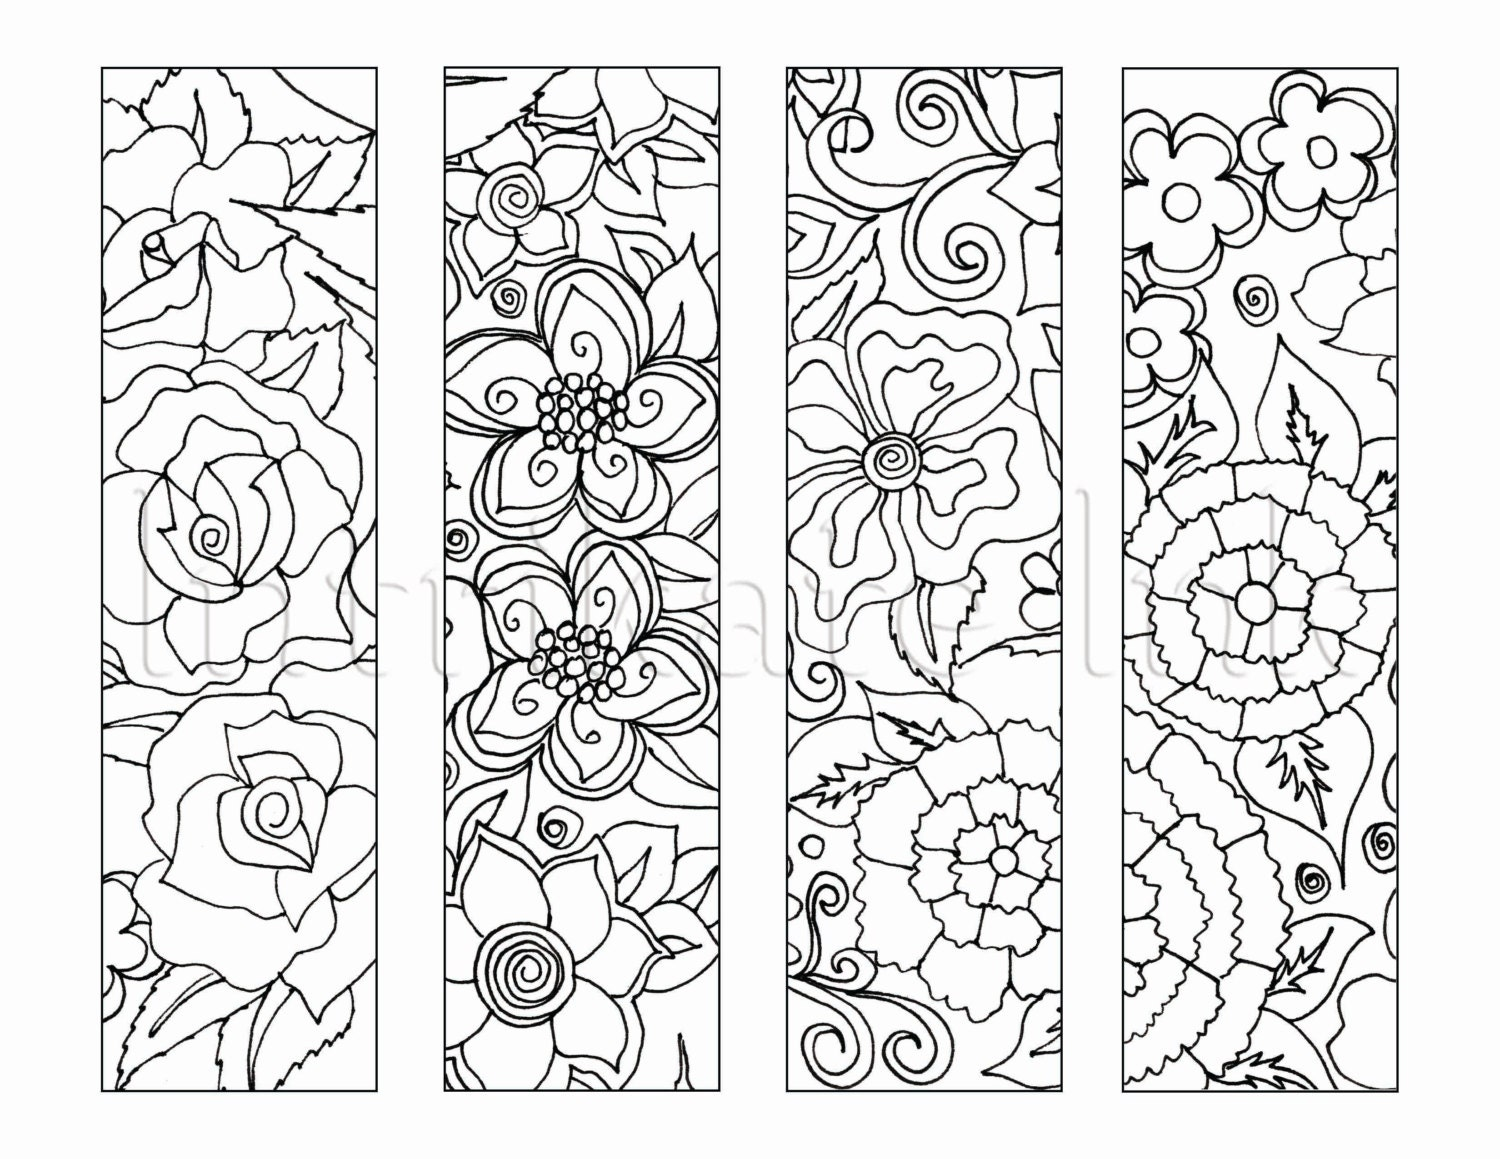 Sly image pertaining to printable bookmarks to color